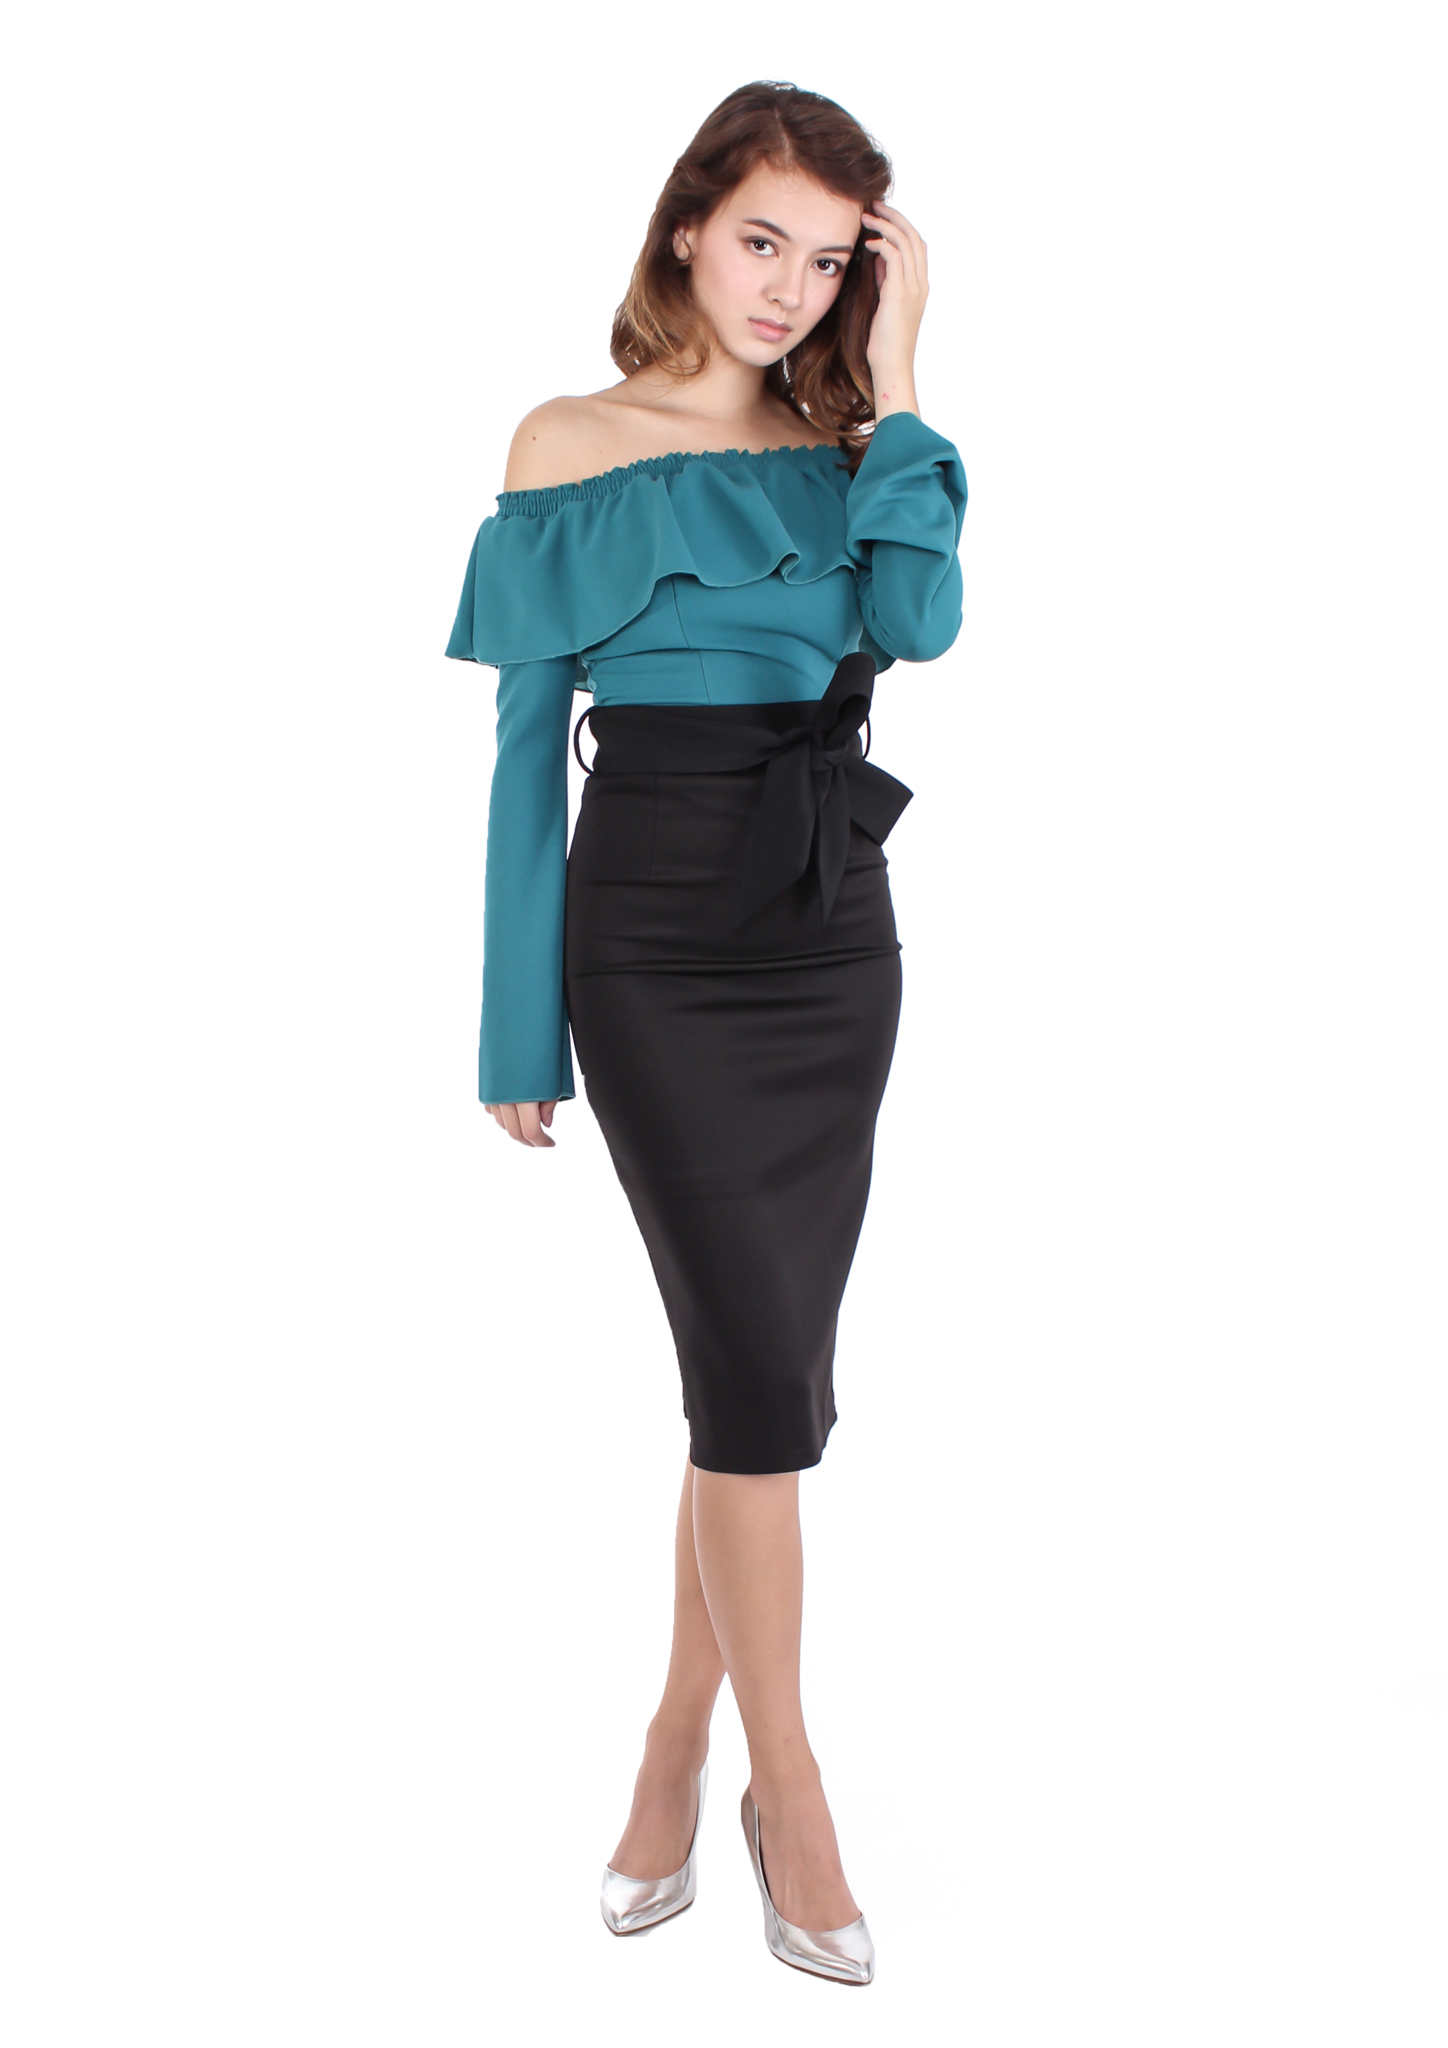 Off-shoulder Ruffle Top (Teal)